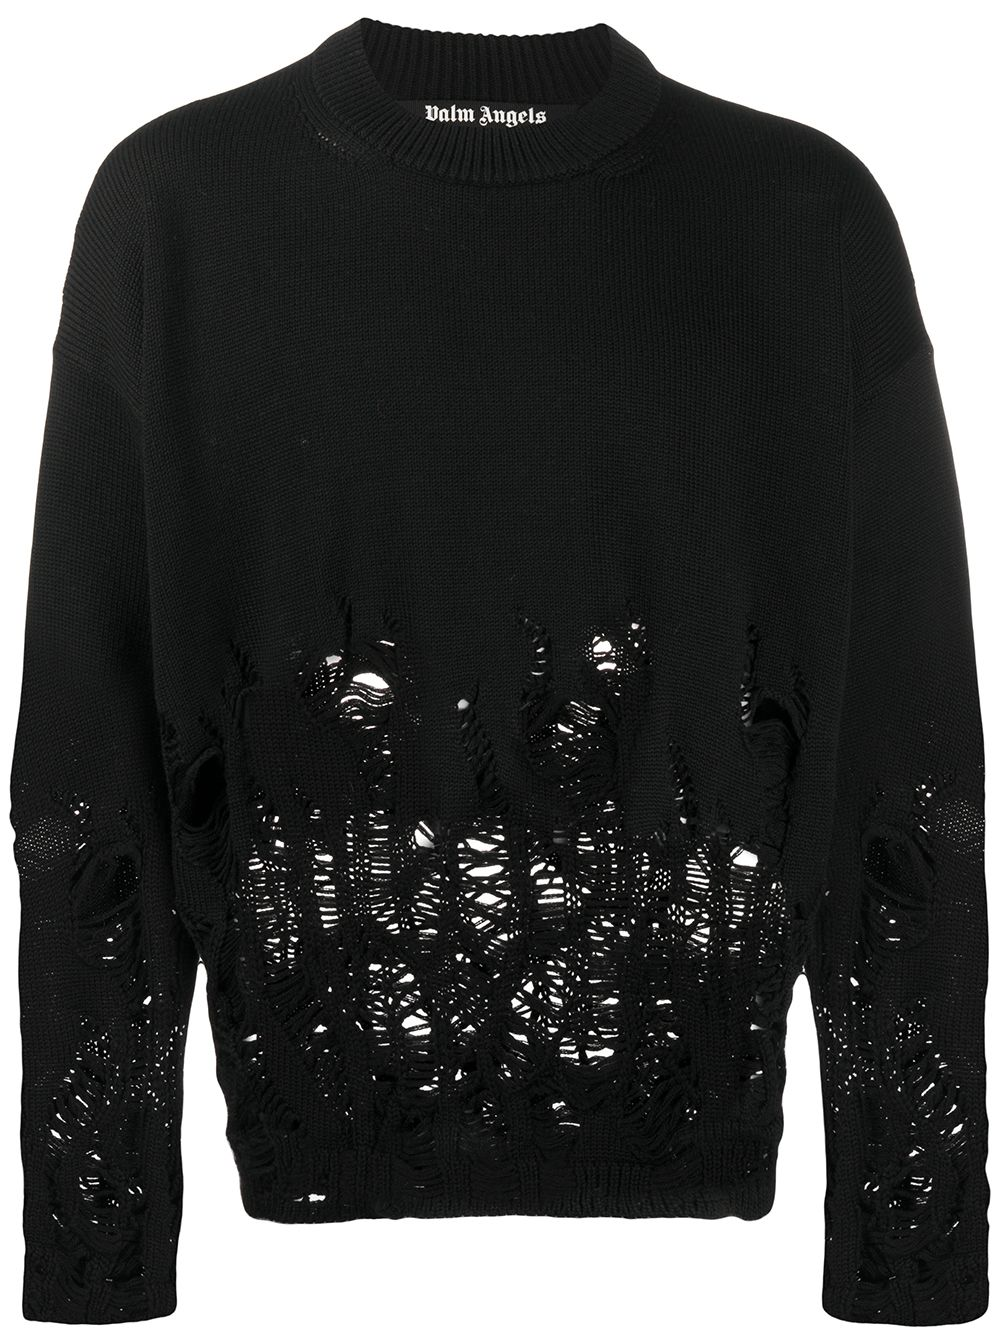 Immagine di Palm Angels | Distressed Flames Sweater